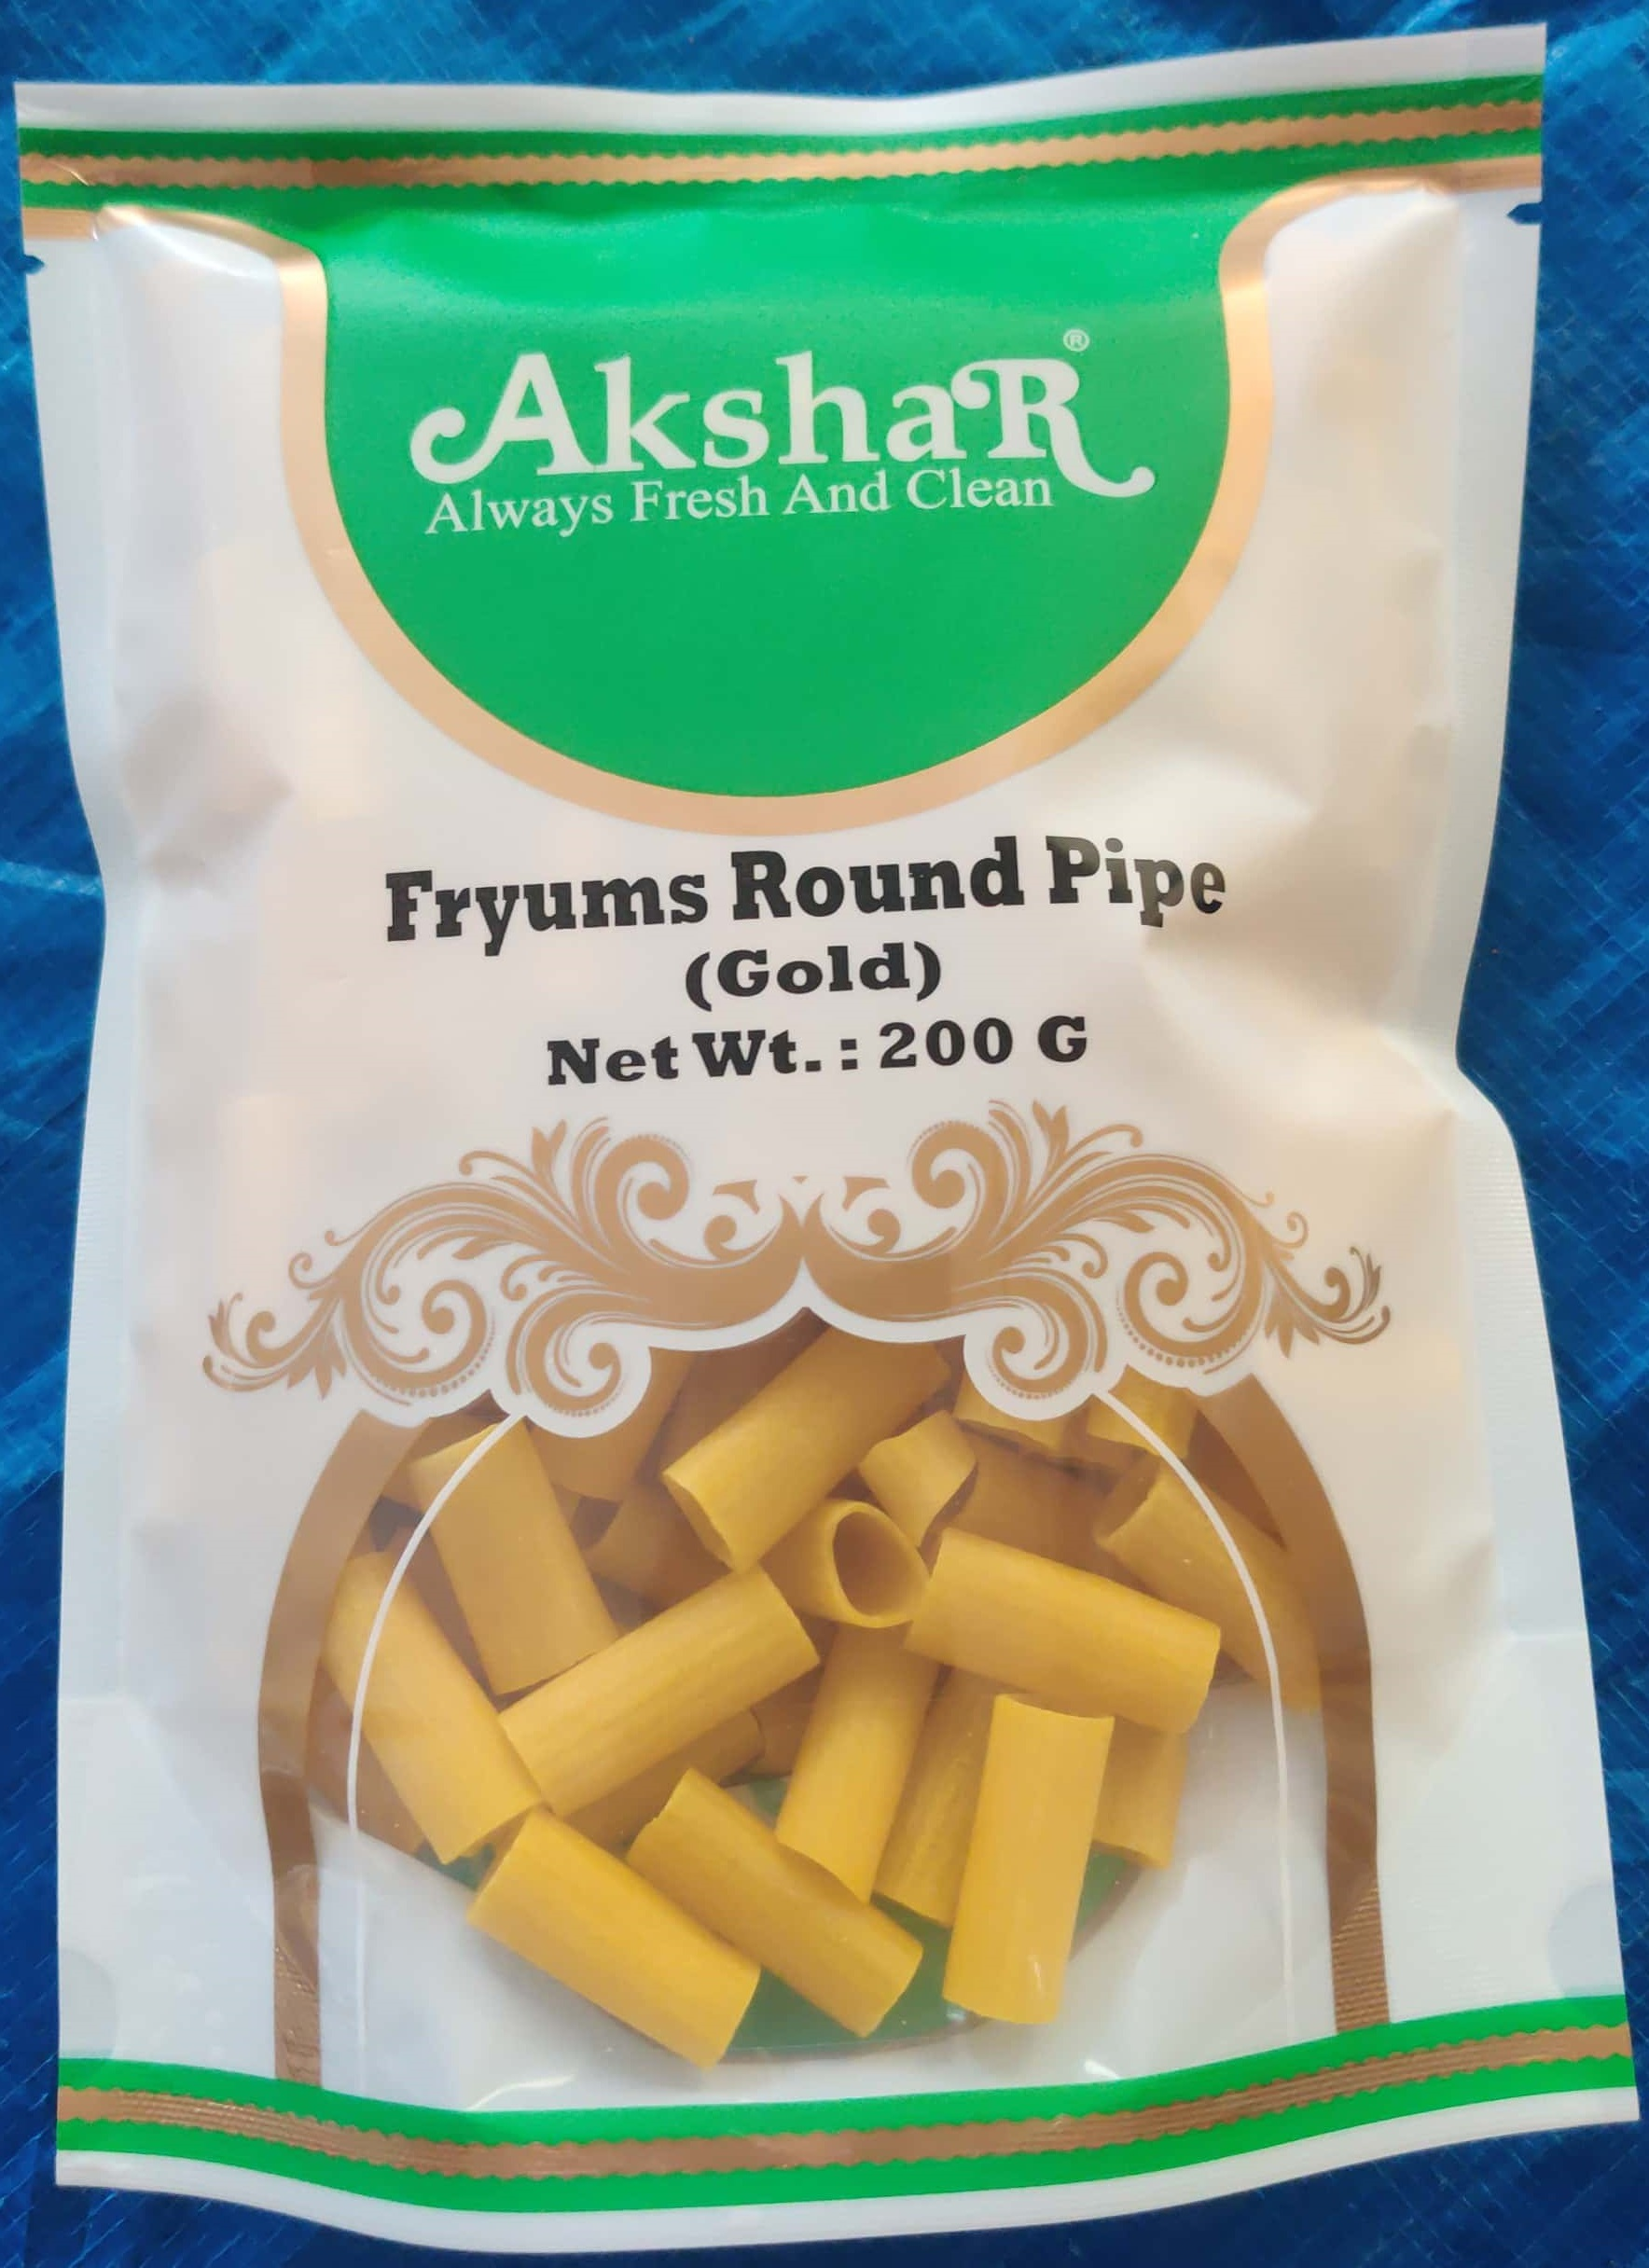 FRYUMS ROUND PIPE (GOLD)